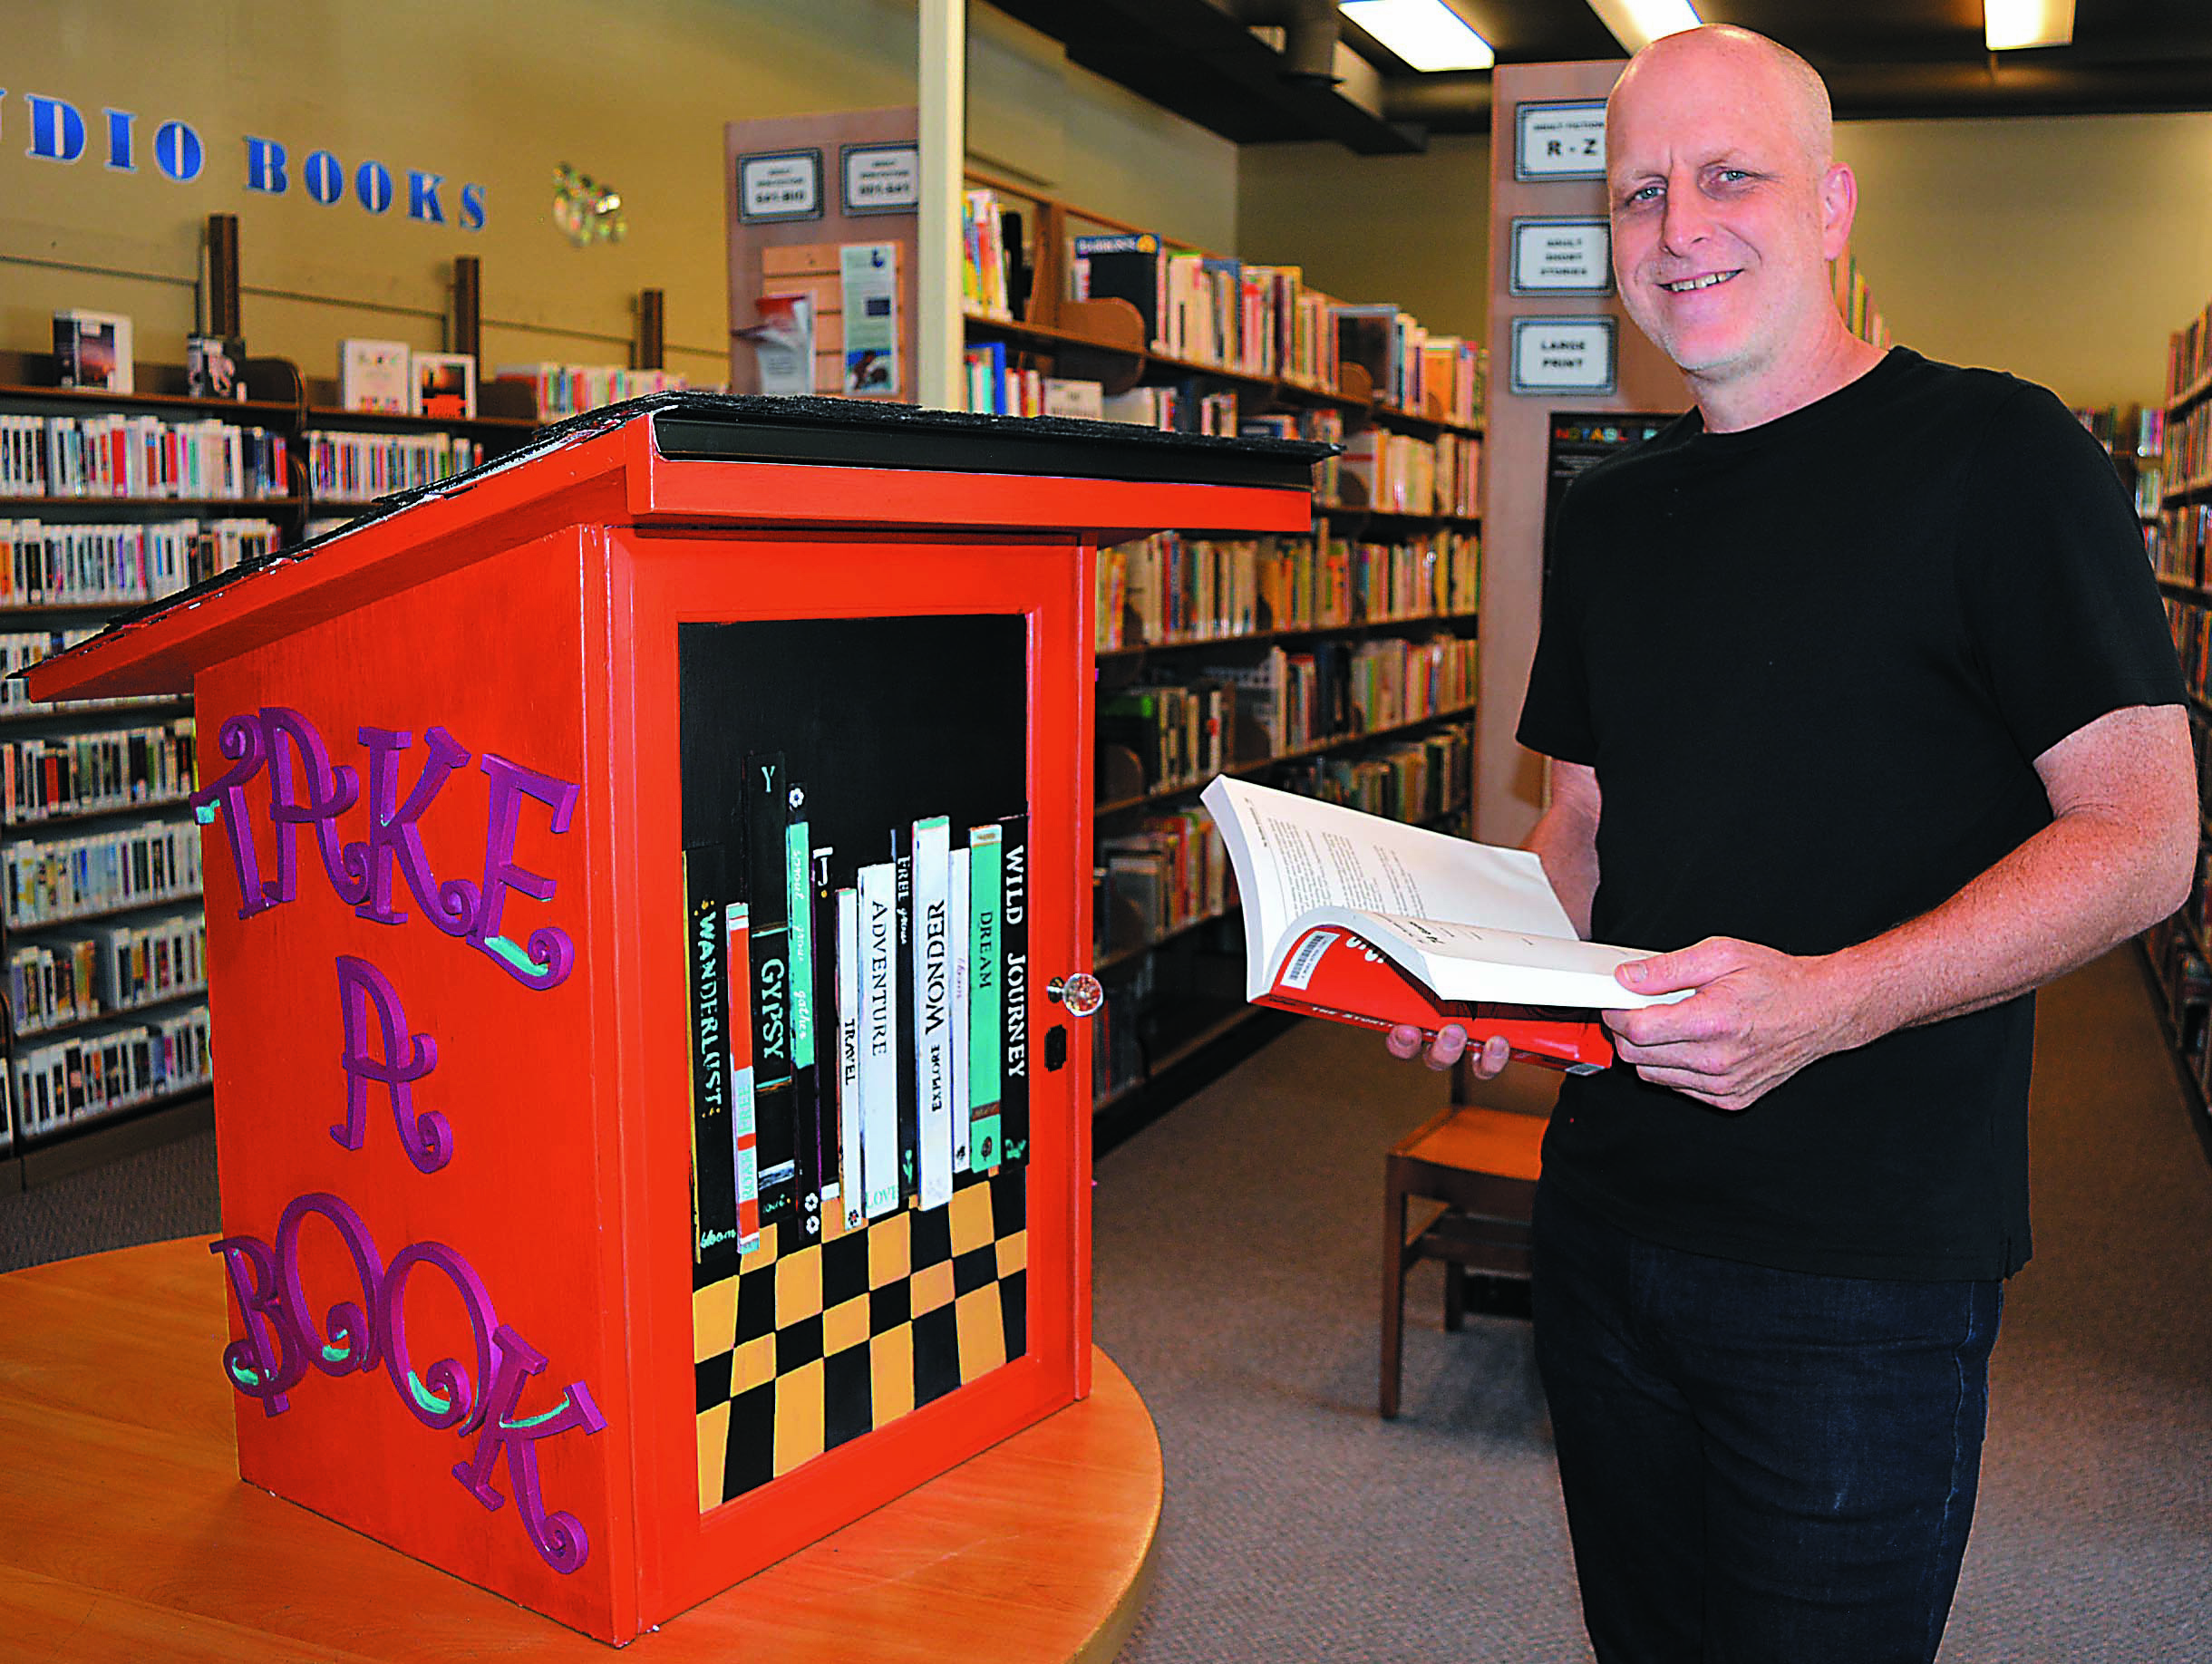 Addison Township resident Brian Howarth poses with the Little Free Library he built on behalf of the Addison Township Public Library. It will be placed along the Polly Ann Trail in Leonard. Howarth and his wife, Carolyn, will be honored as the Special People during Leonard's Strawberry Festival parade July 21. Photo by C.J. Carnacchio.